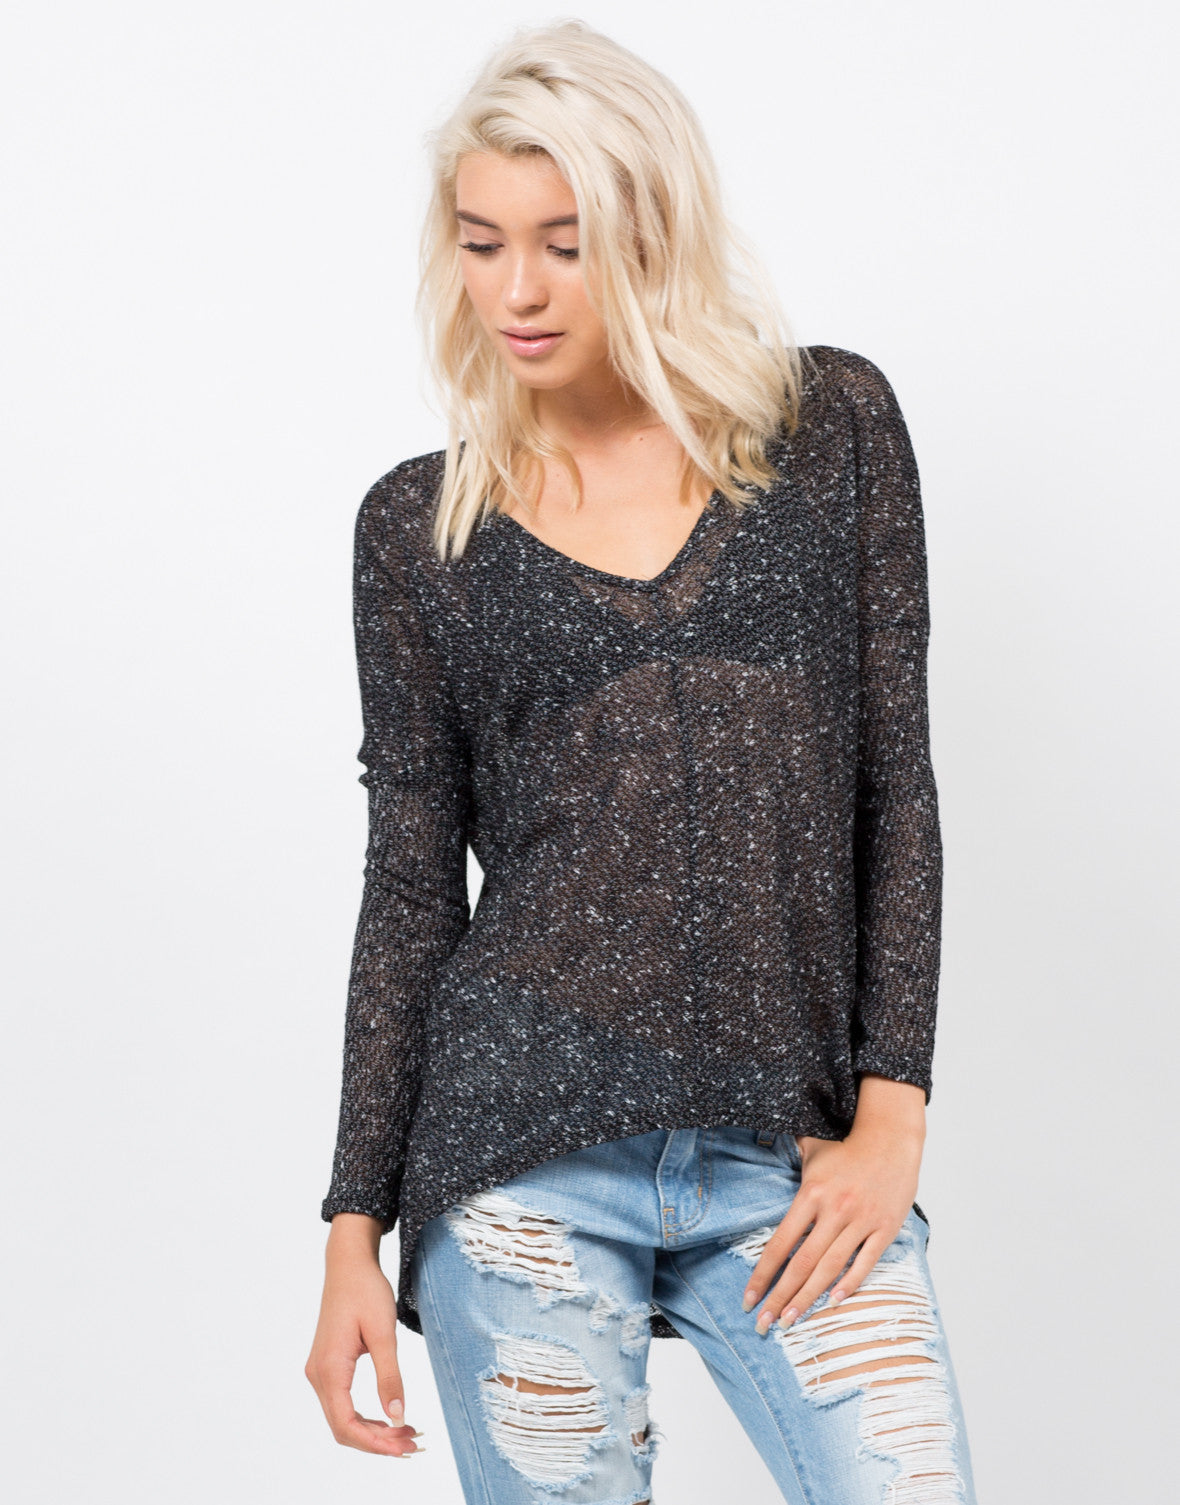 Front View of Light Knit Sweater Top